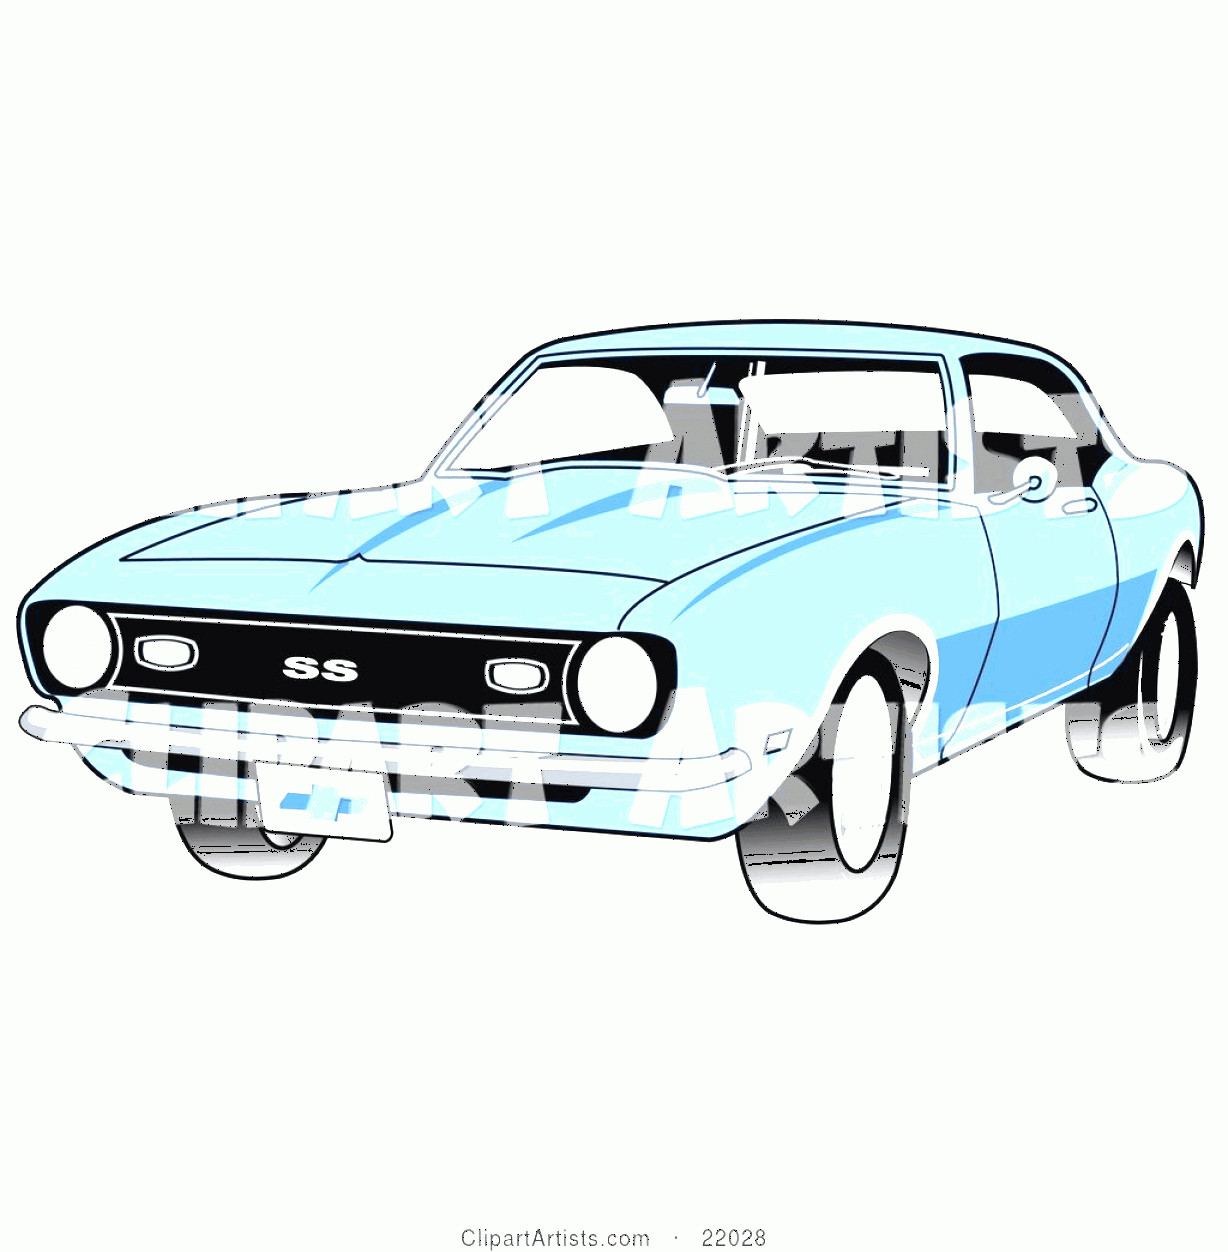 Camaro SS Logo Vector: Vector Clipart Light Blue Chevrolet Ss Camaro Muscle Car With A Chrome Bumper By Andy Nortnik